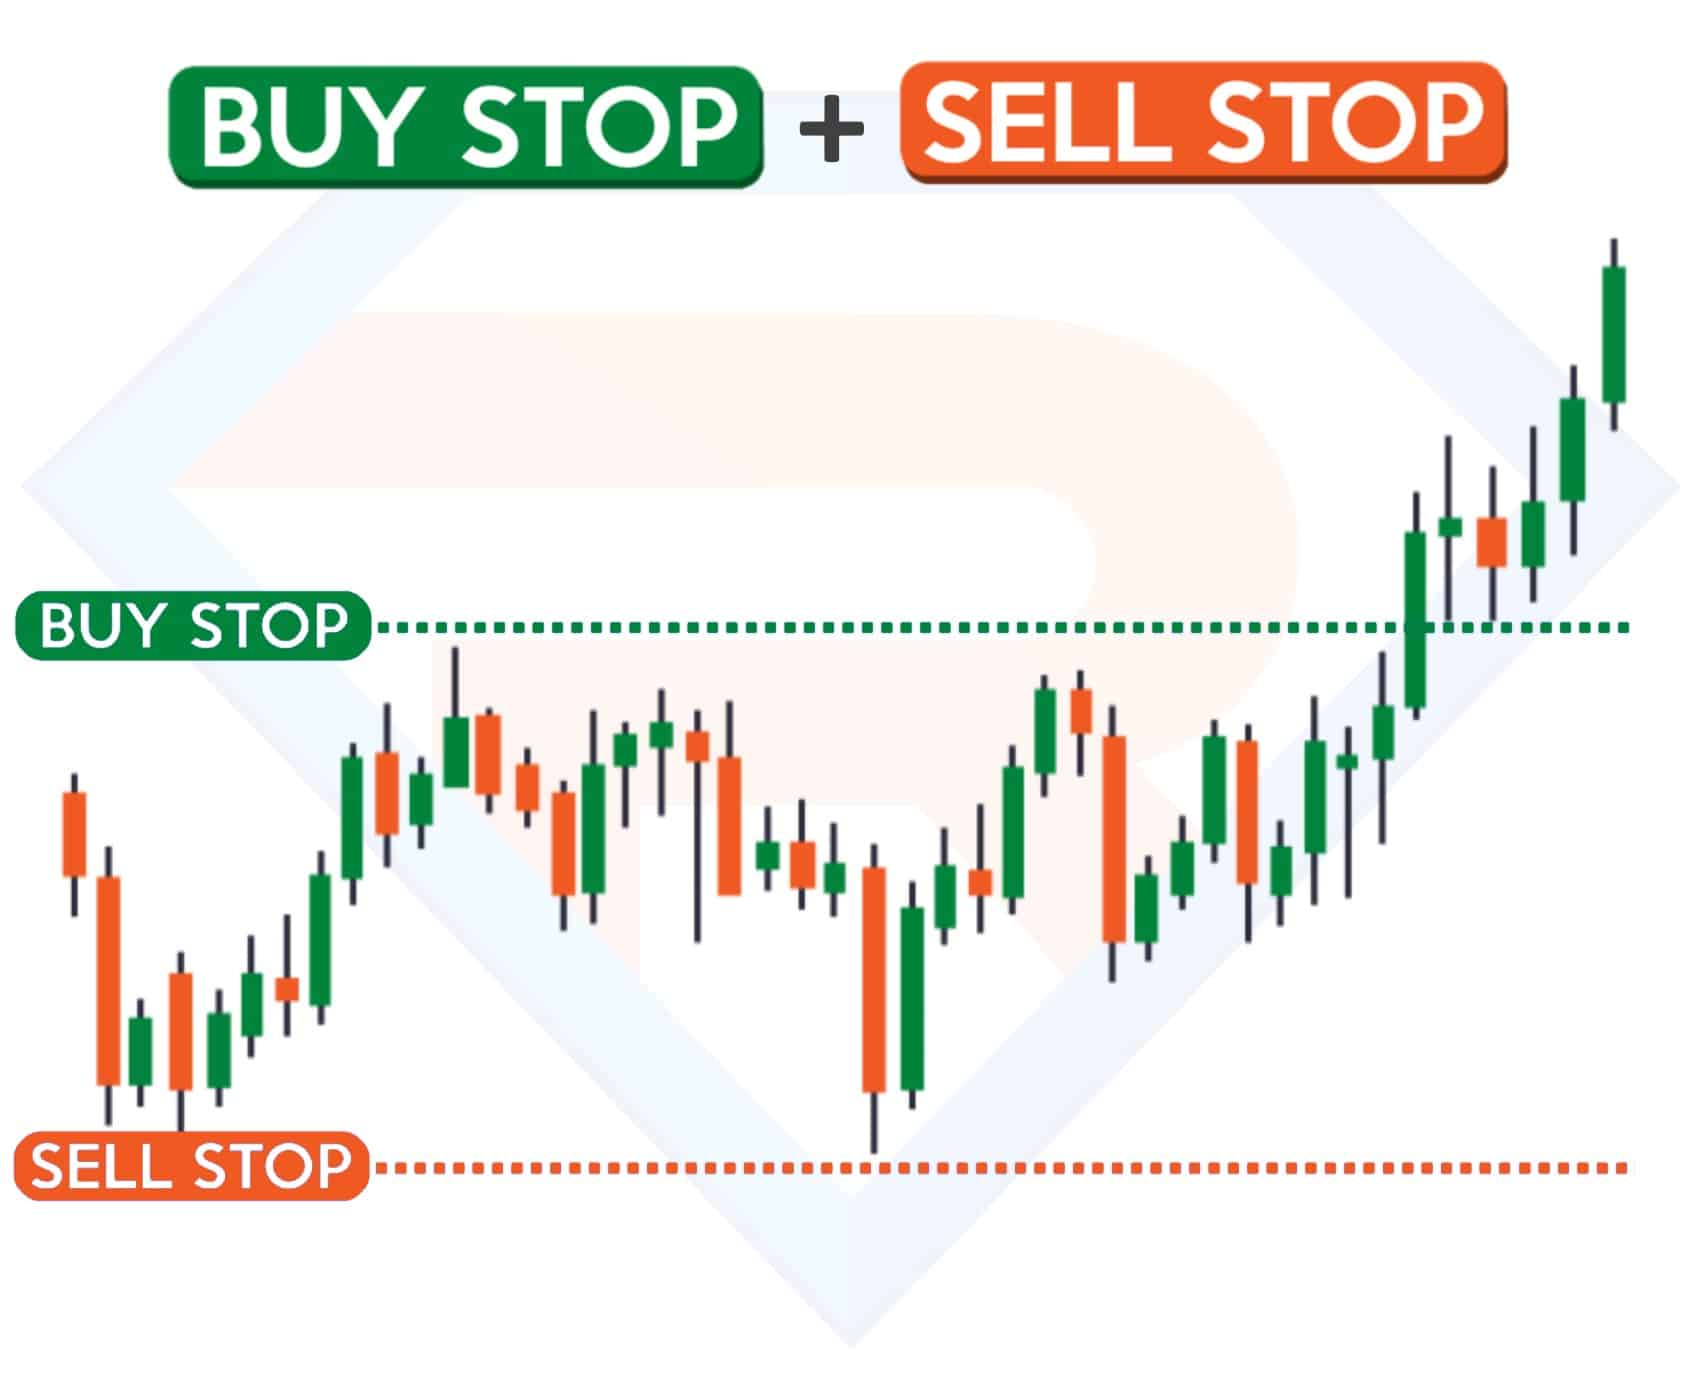 Buy Stop и Sell Stop